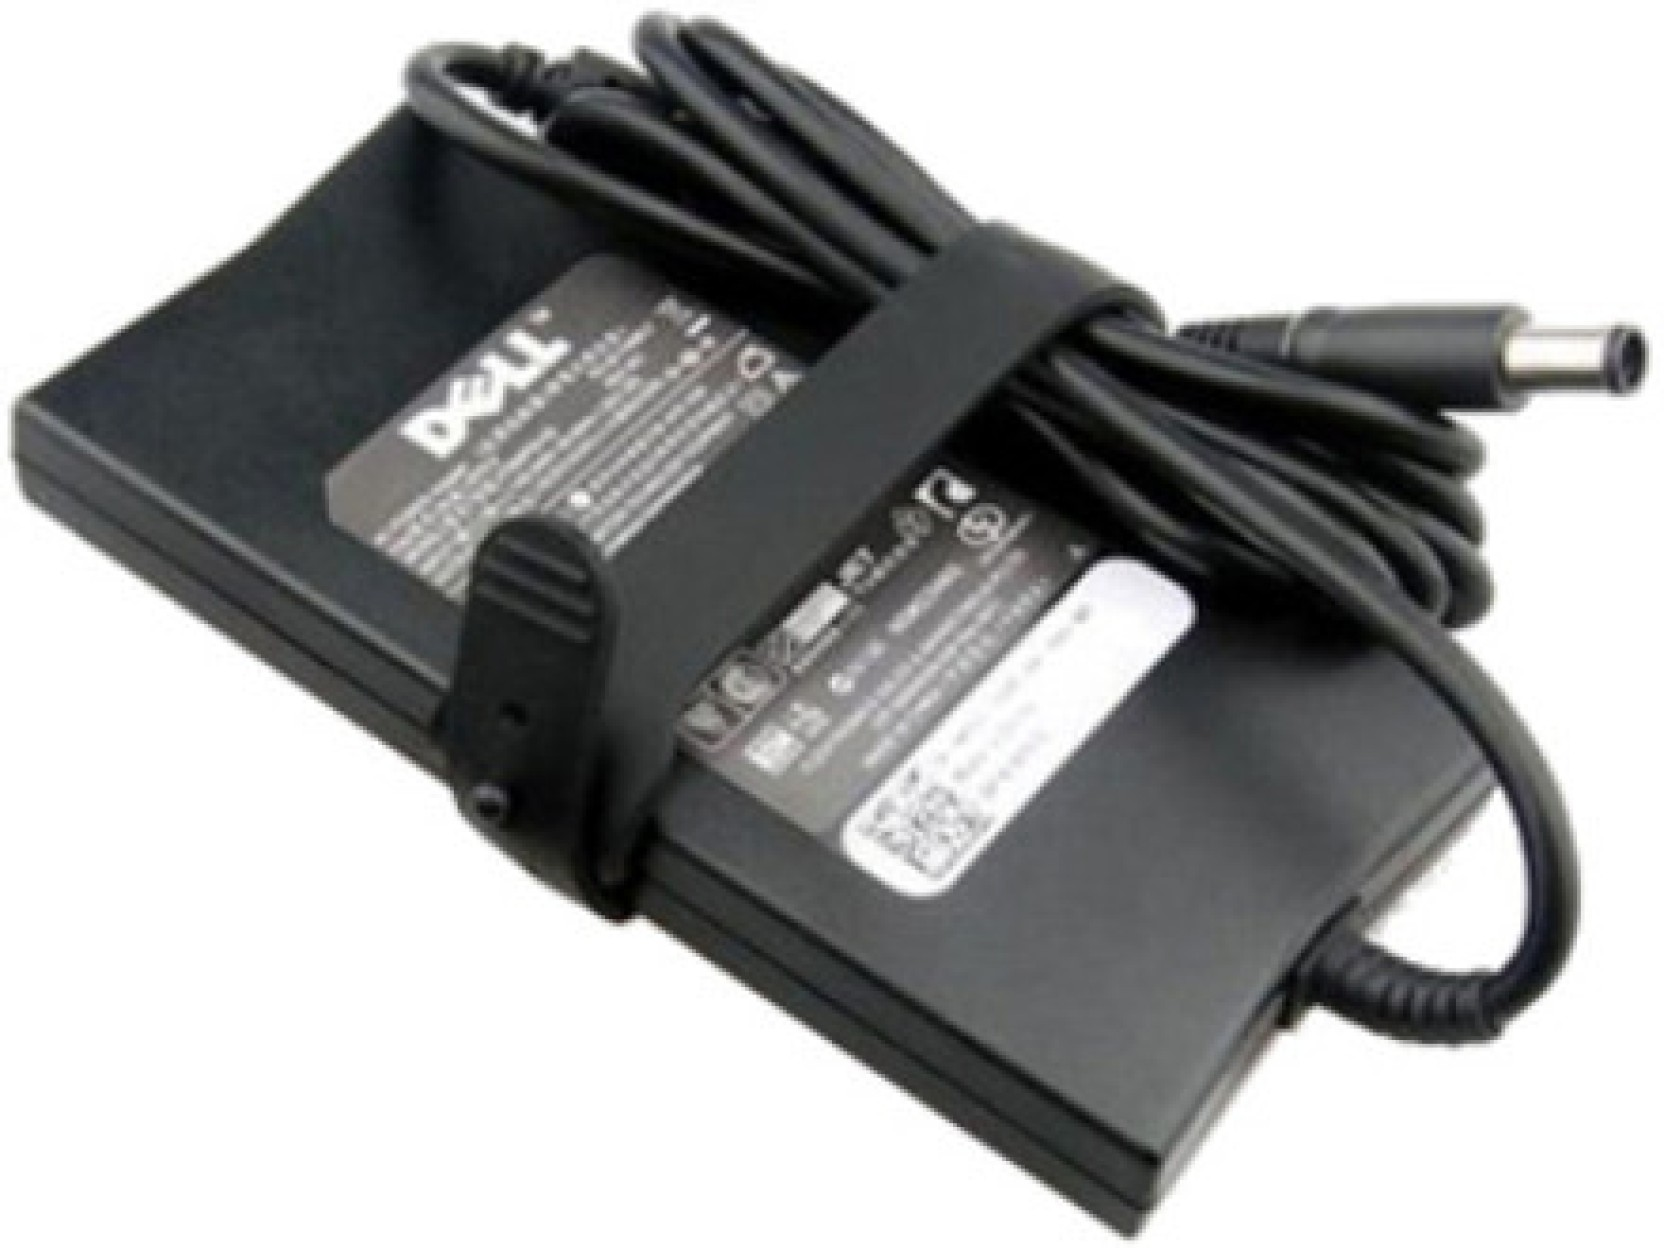 Dell Laptop Power : Dell w adapter without power cord flipkart